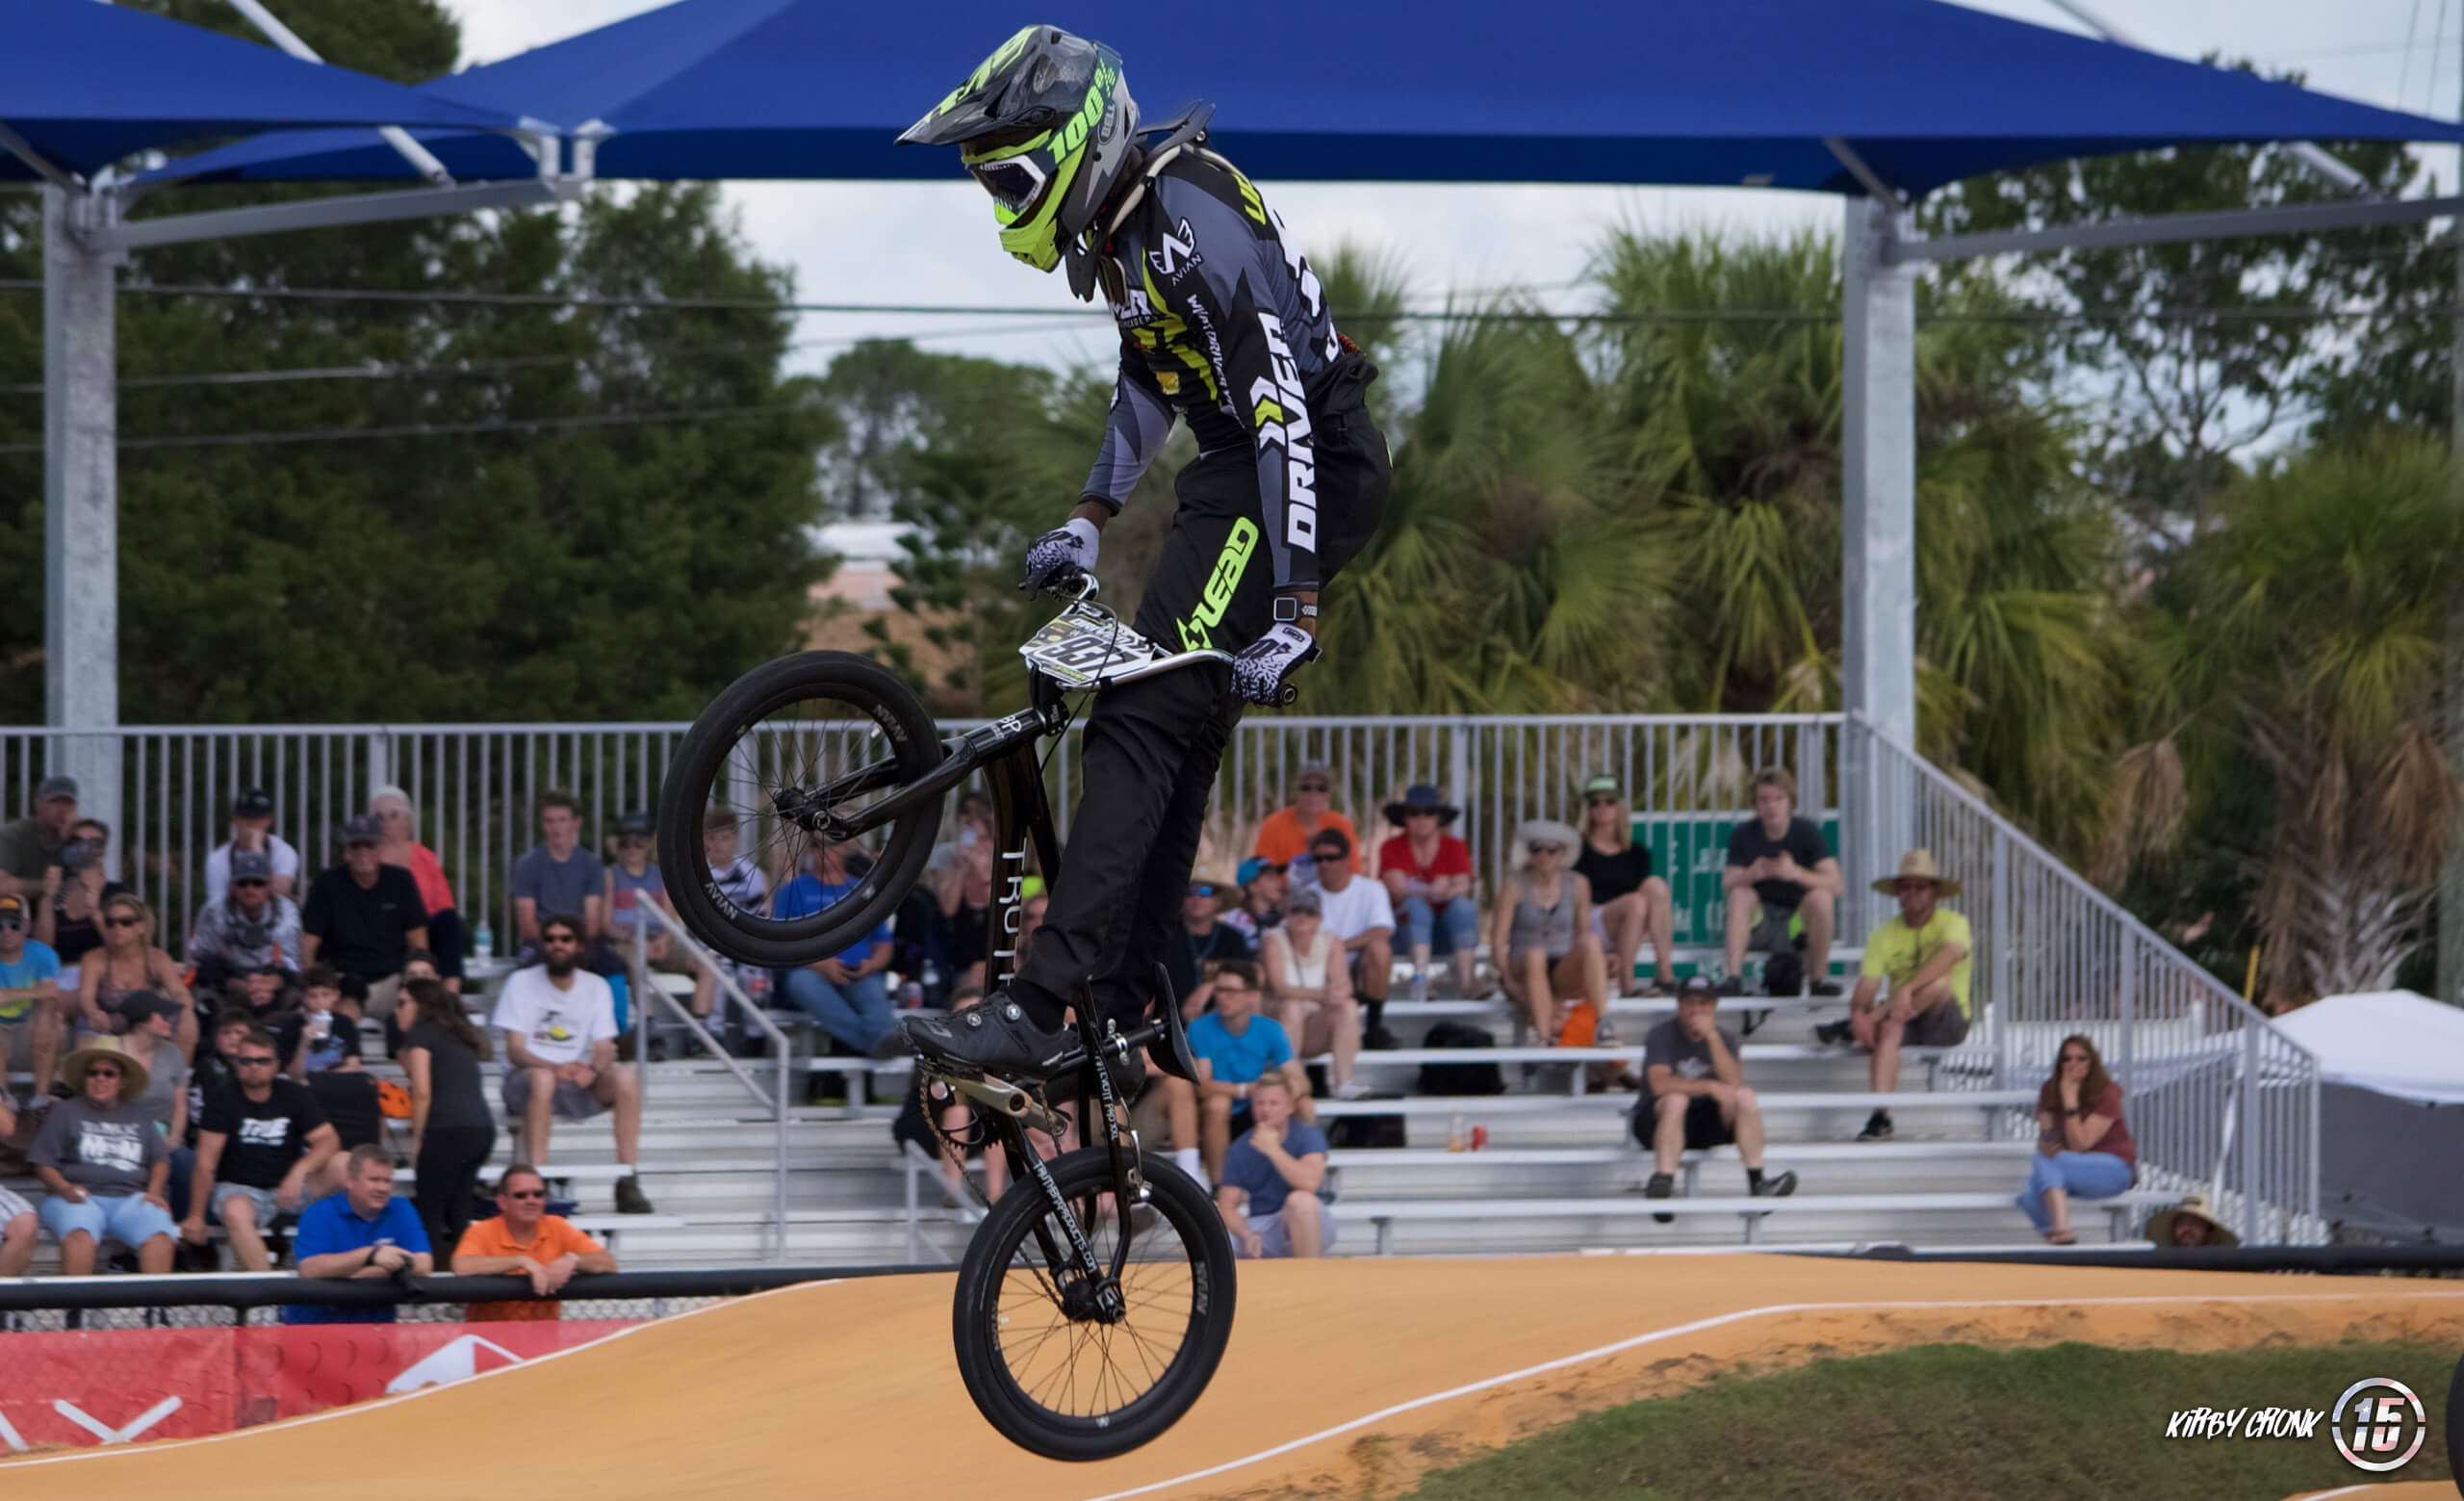 Jeff Upshaw Holly Tillman Gator Nationals - Kirby Cronk - Fifteen BMX